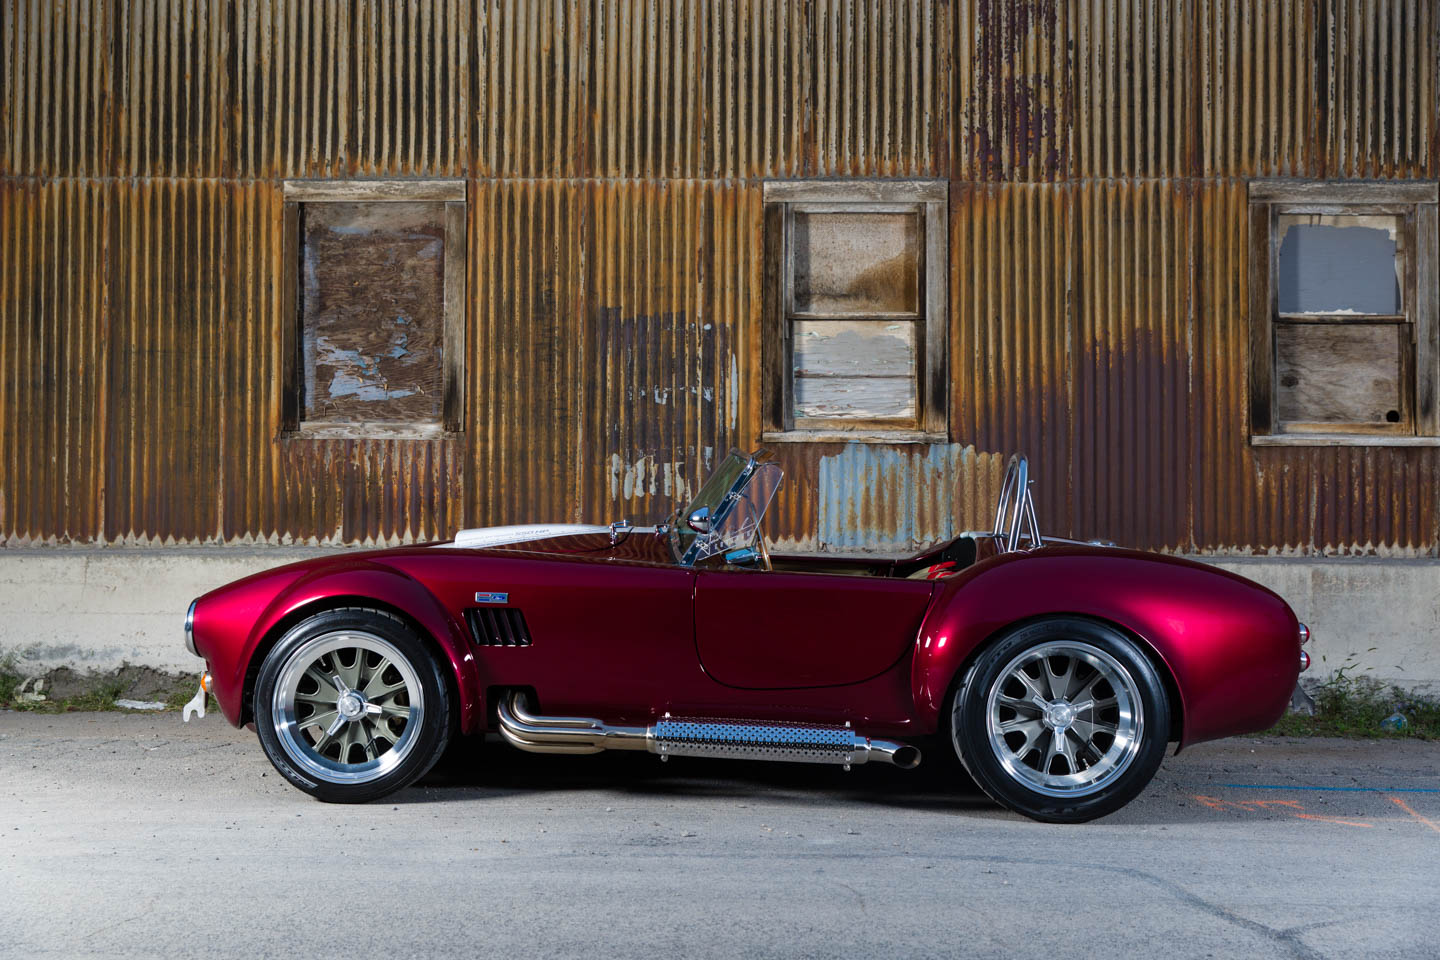 Side view of the candy red Shelby Cobra replica